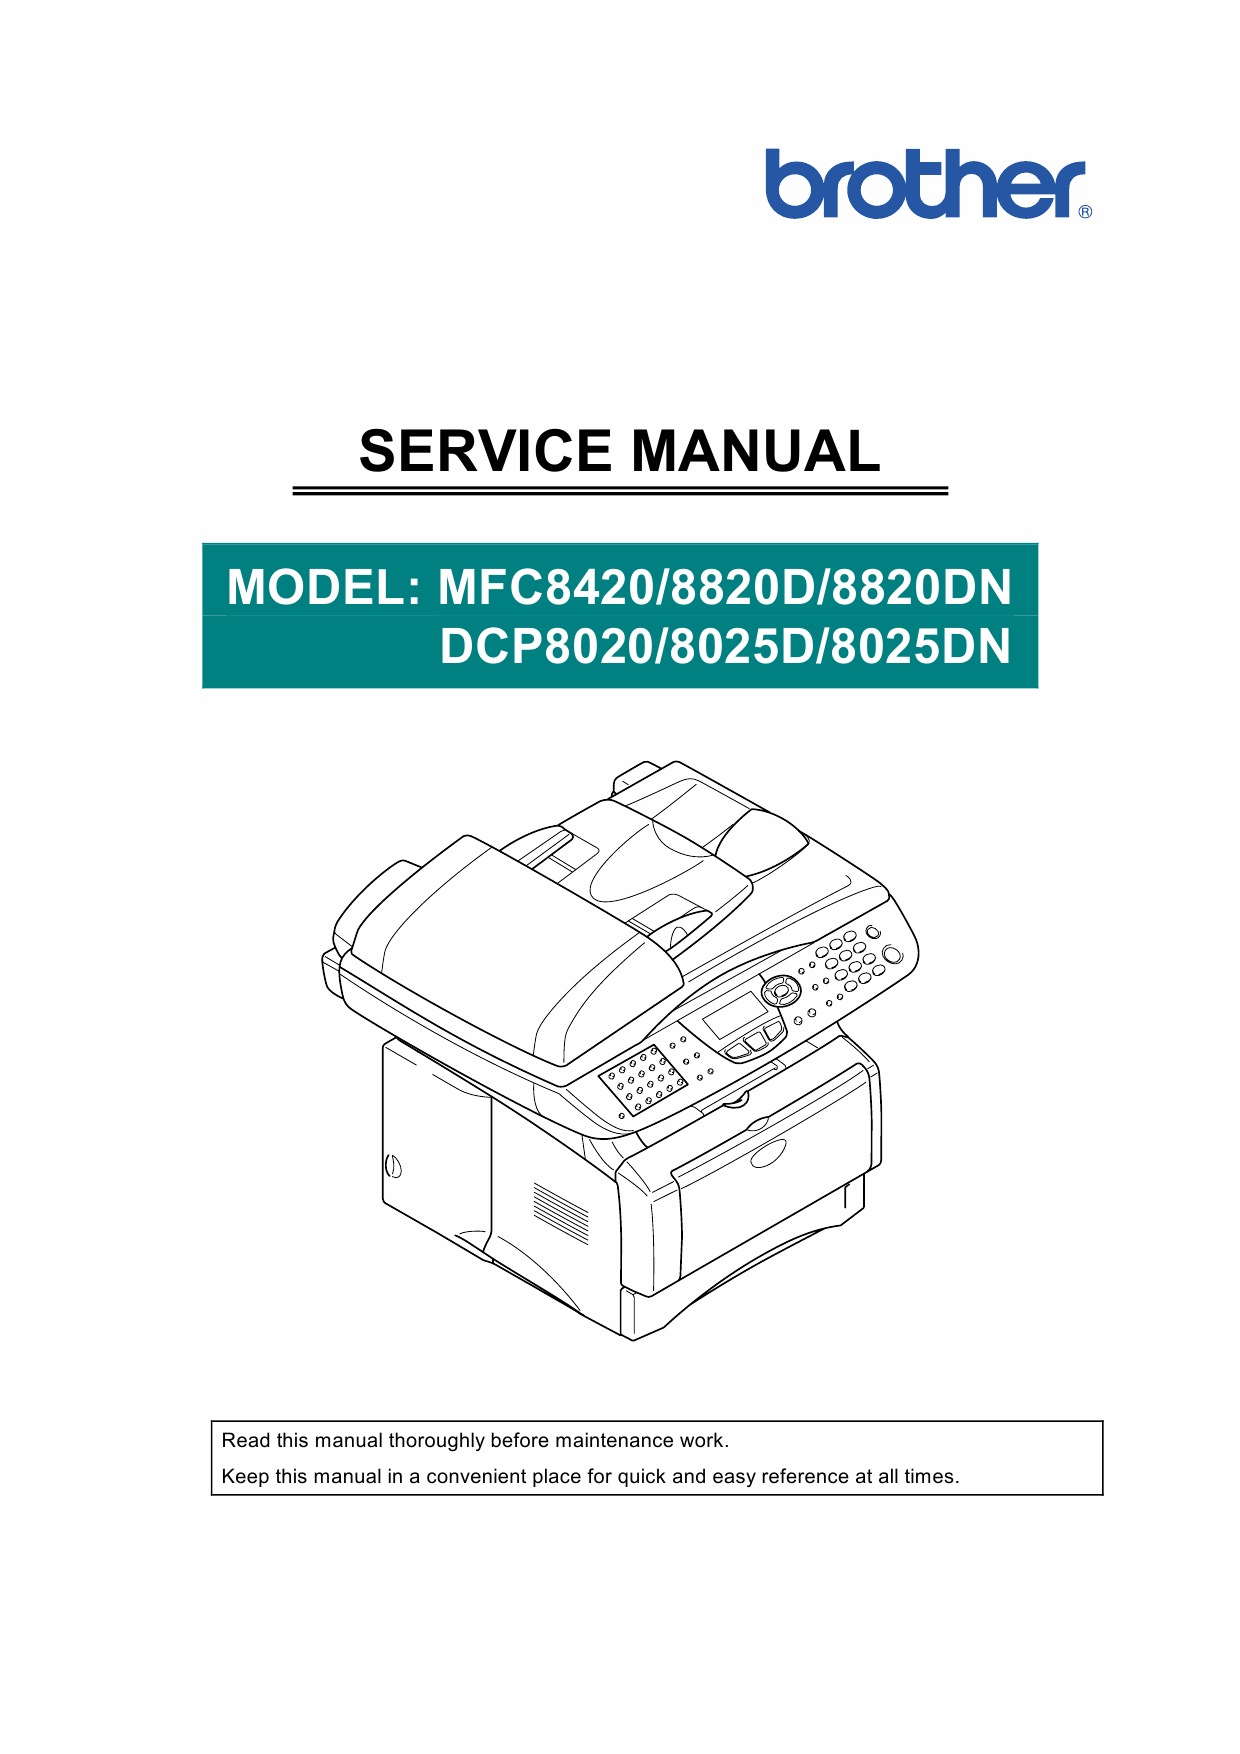 Brother MFC 8420 8820D 8820DN DCP8020 8025D 8025DN Service Manual-1